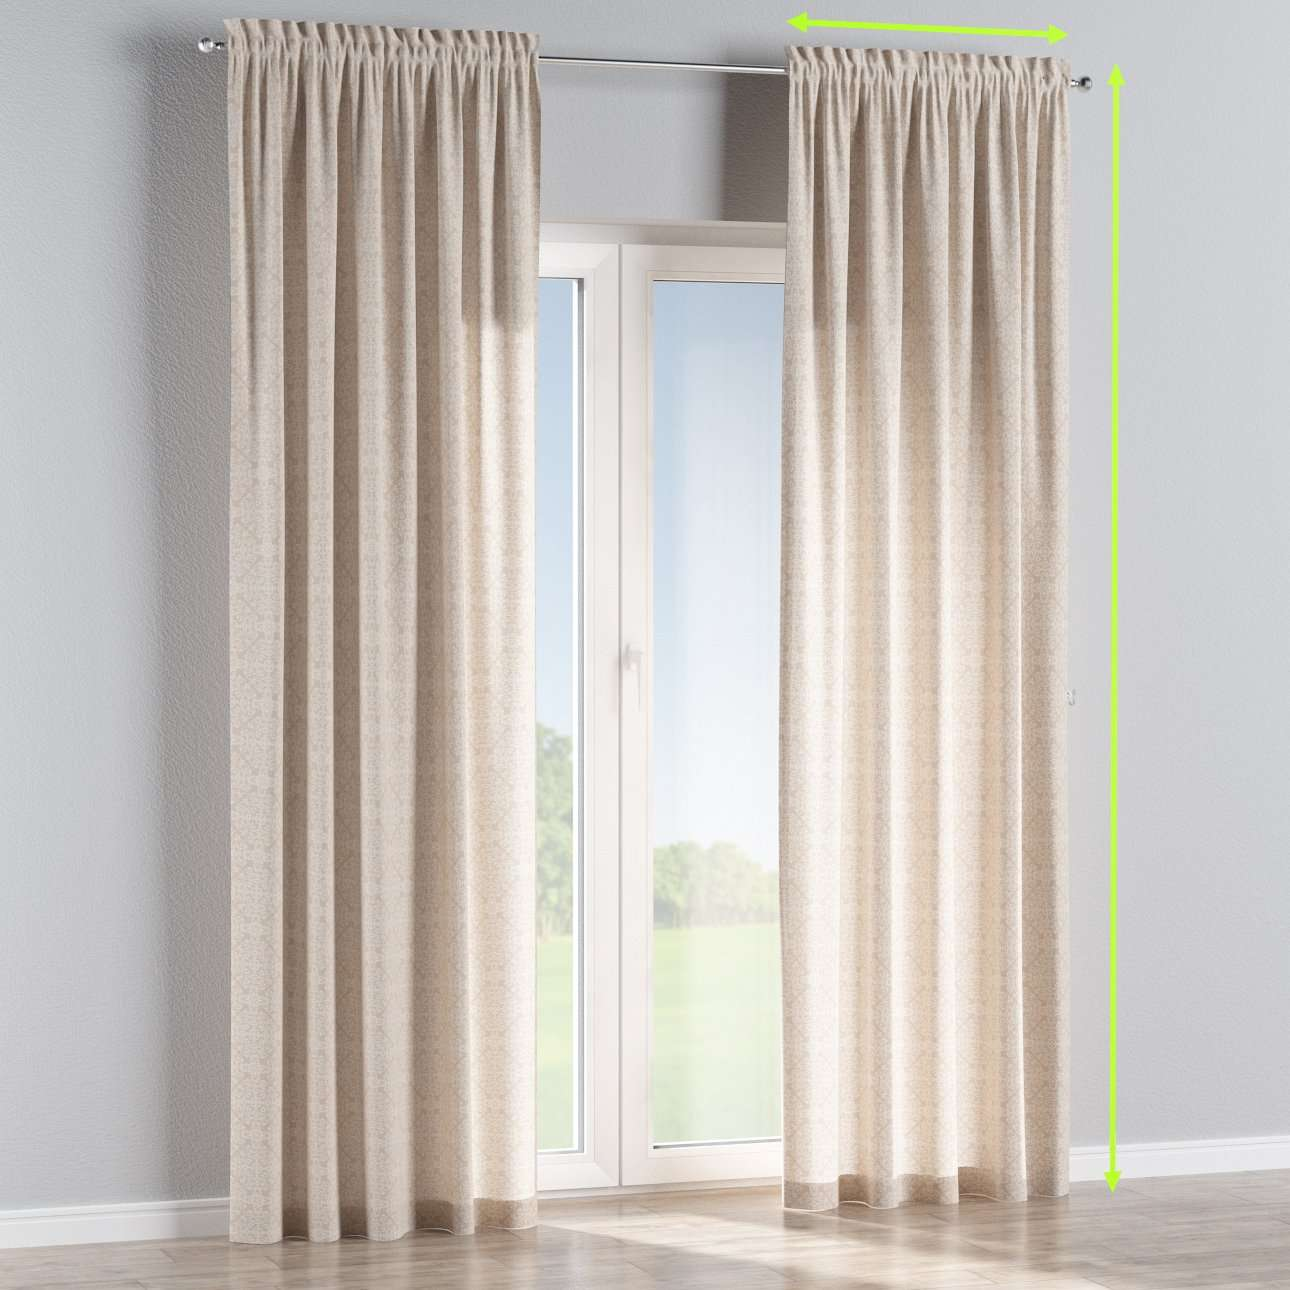 Slot and frill lined curtains in collection Flowers, fabric: 140-39